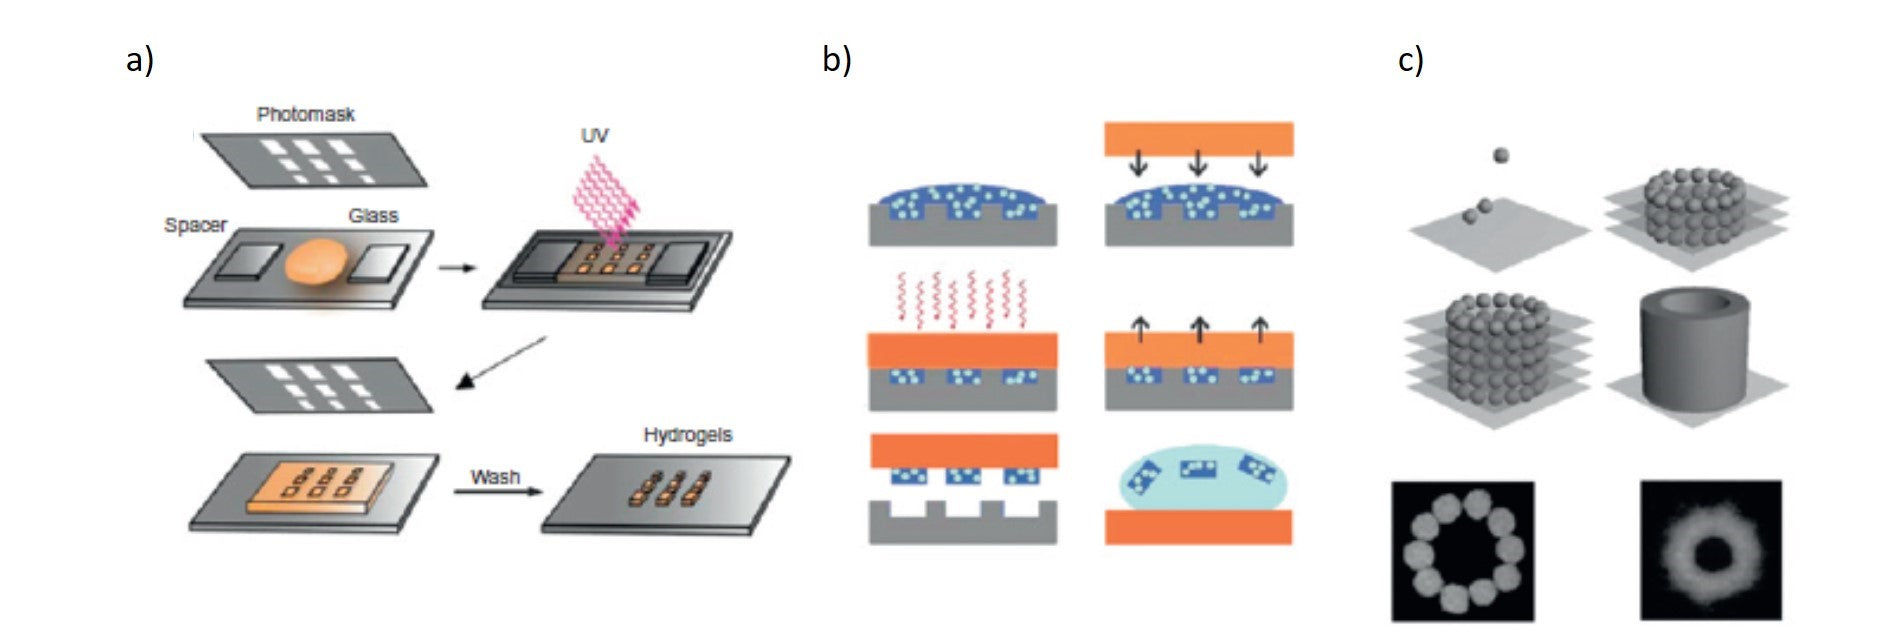 Fabrication techniques to produce microscale hydrogels